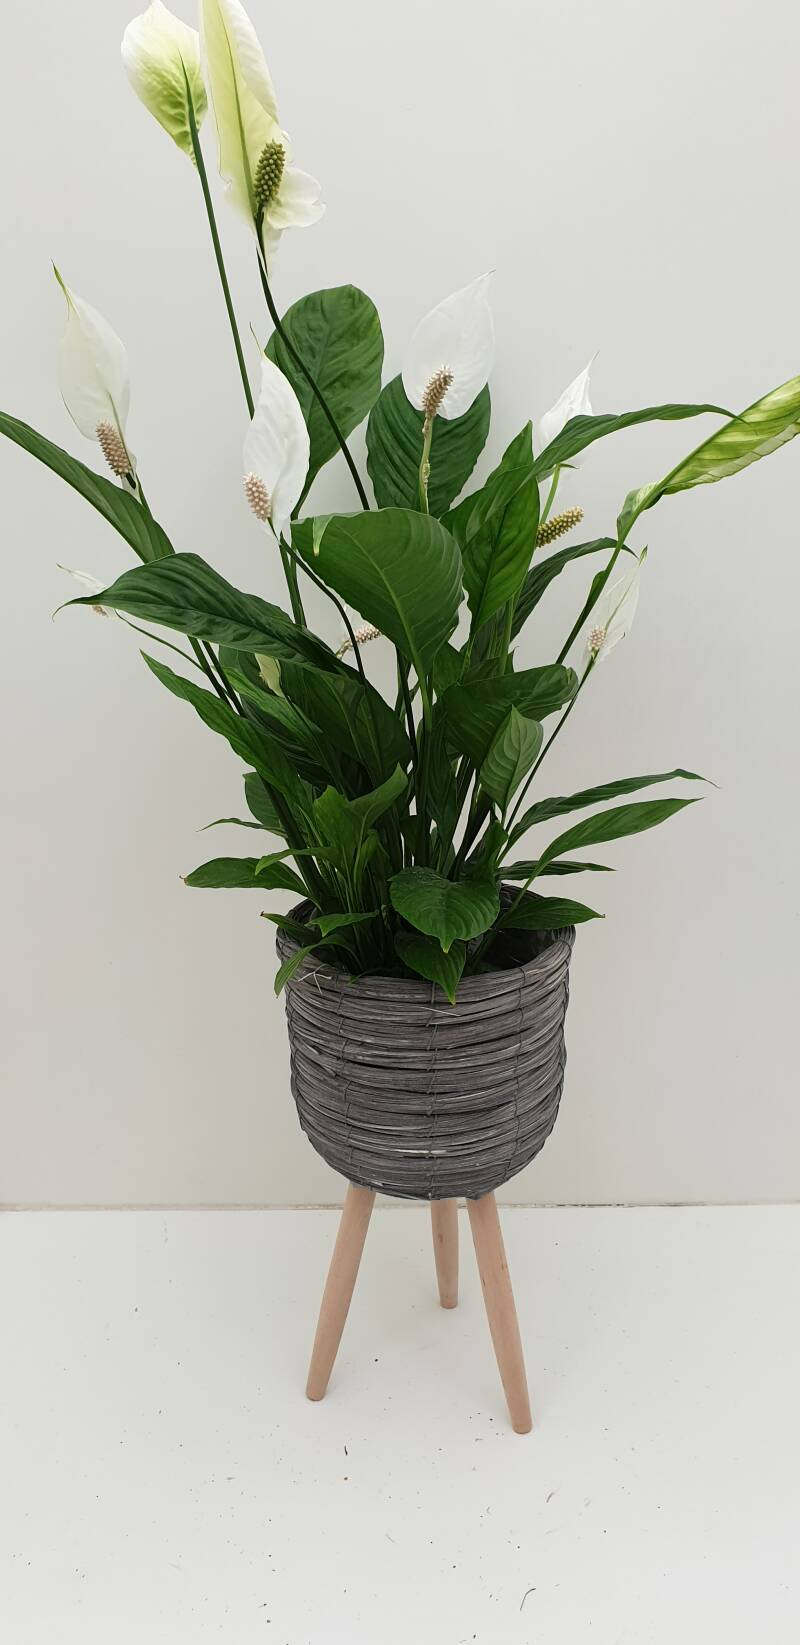 Spathiphyllum in mand